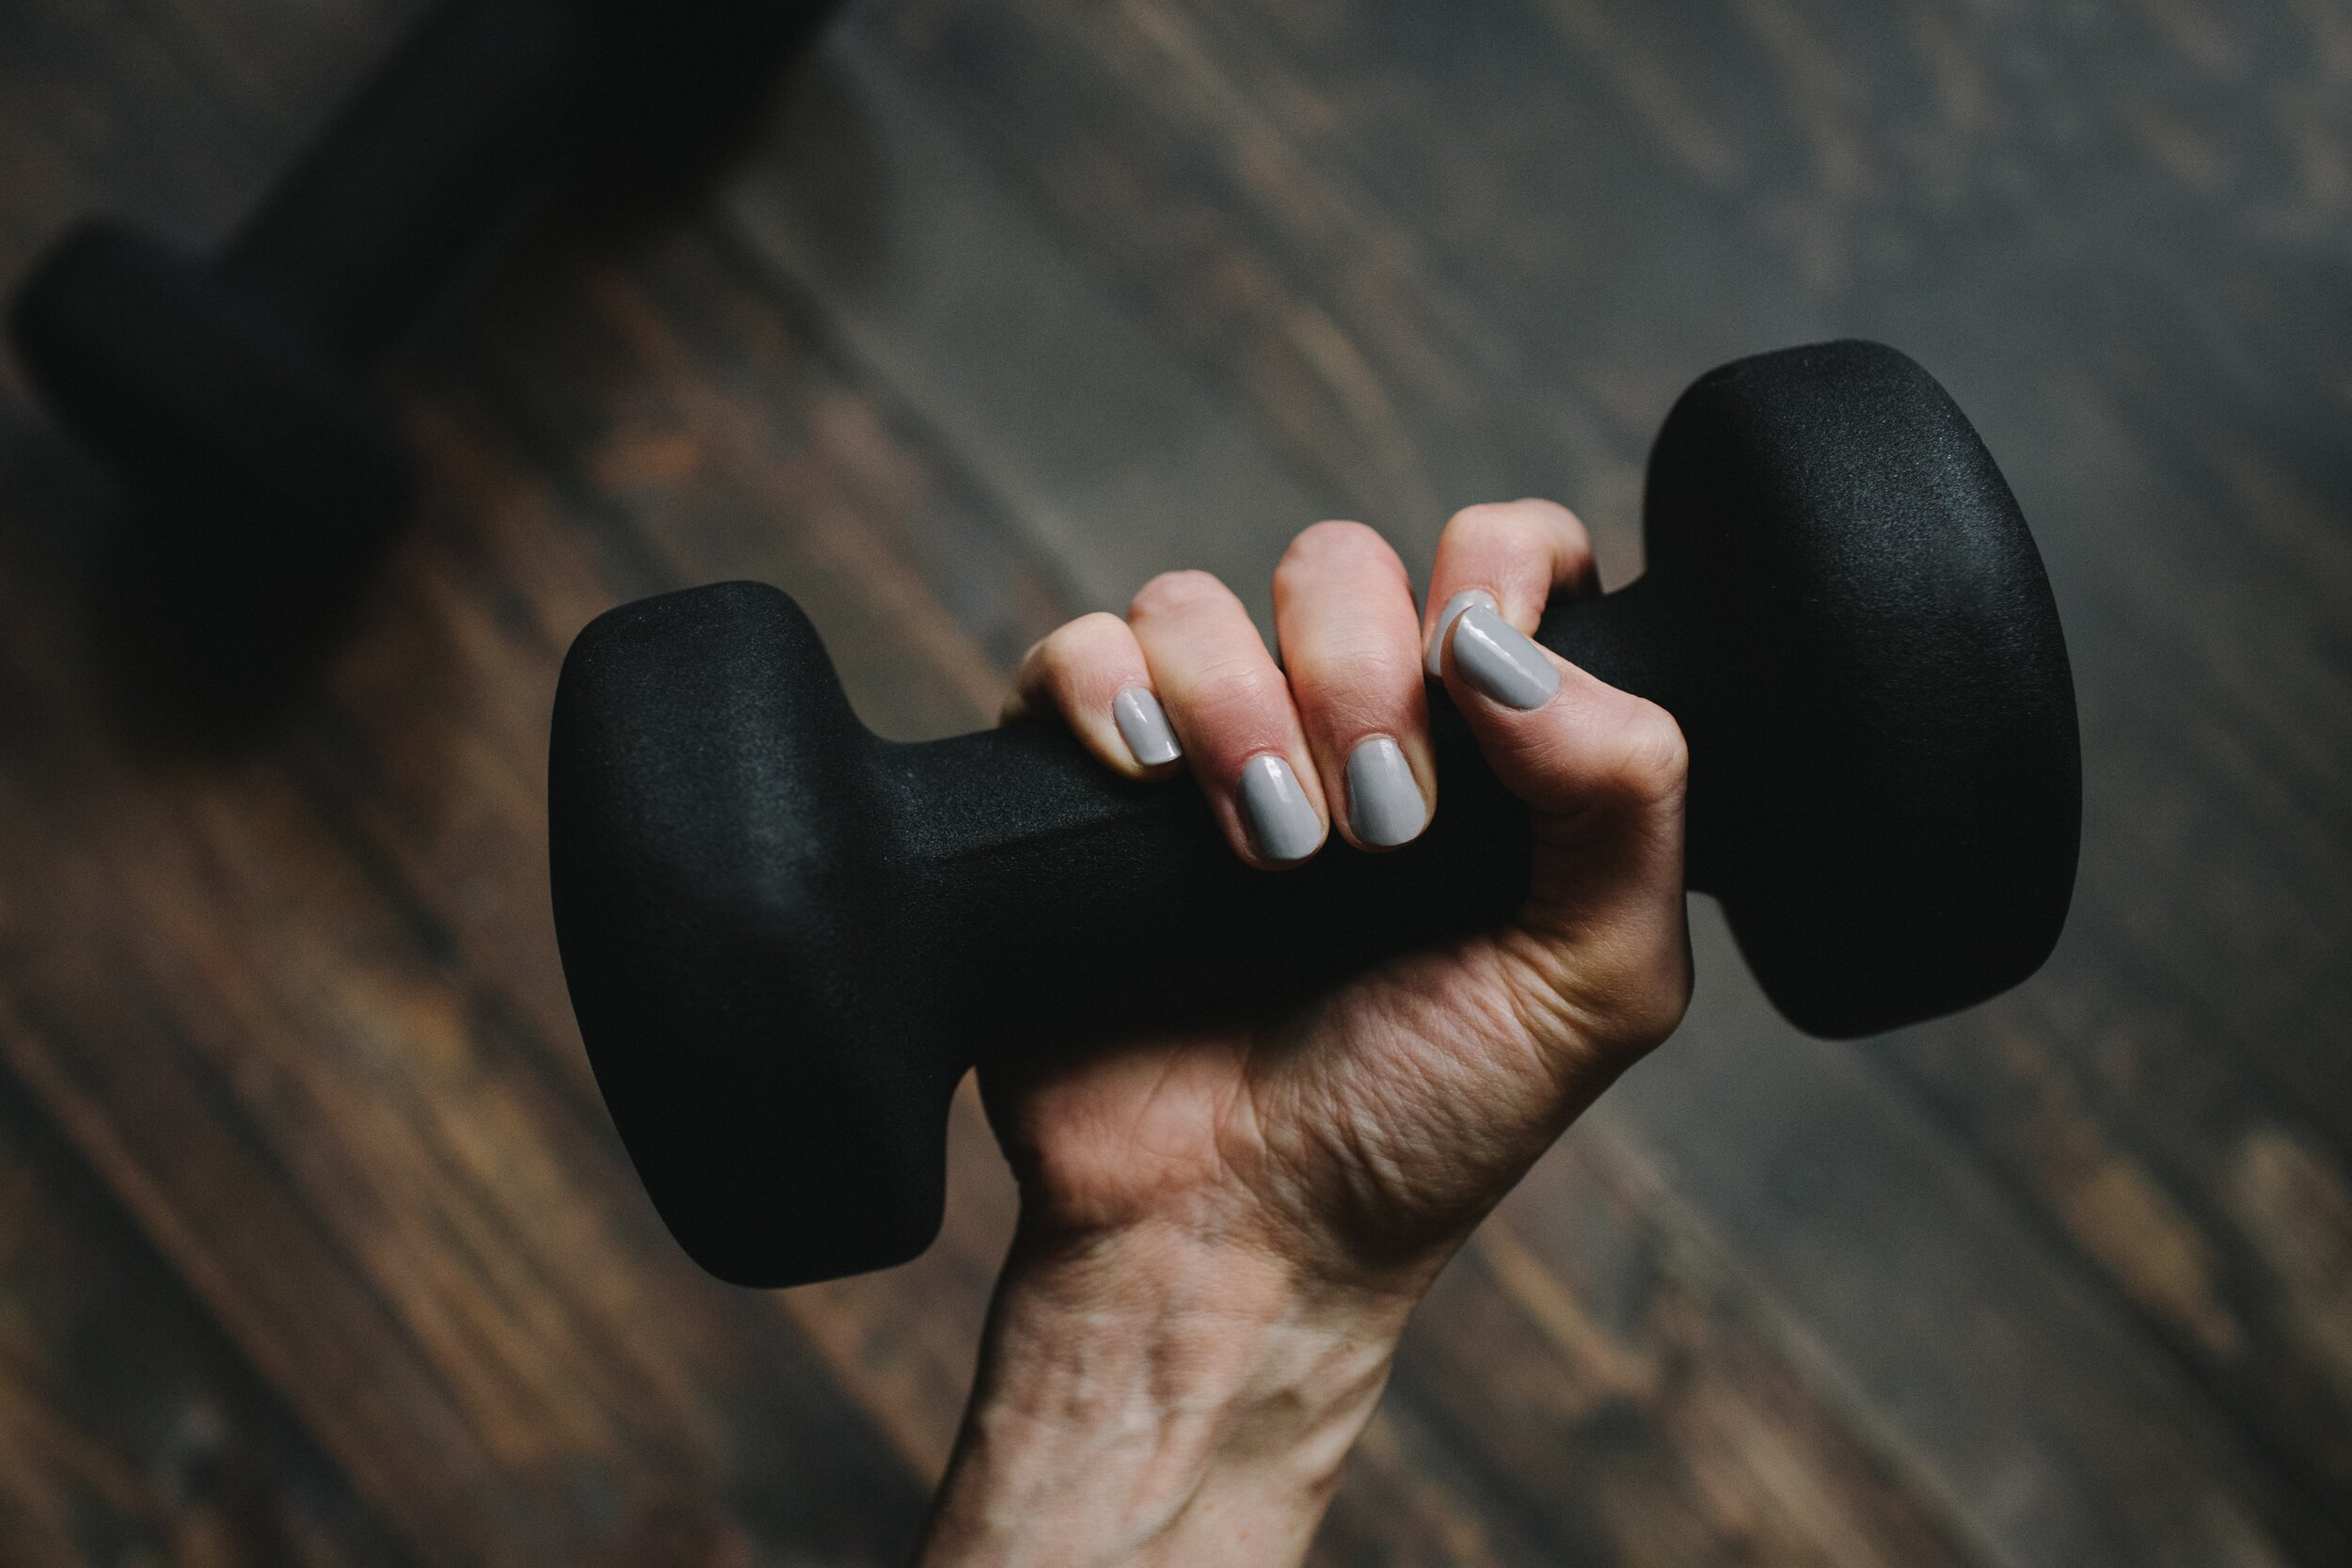 Lifting weights is one key for burning more calories and boosting bone health